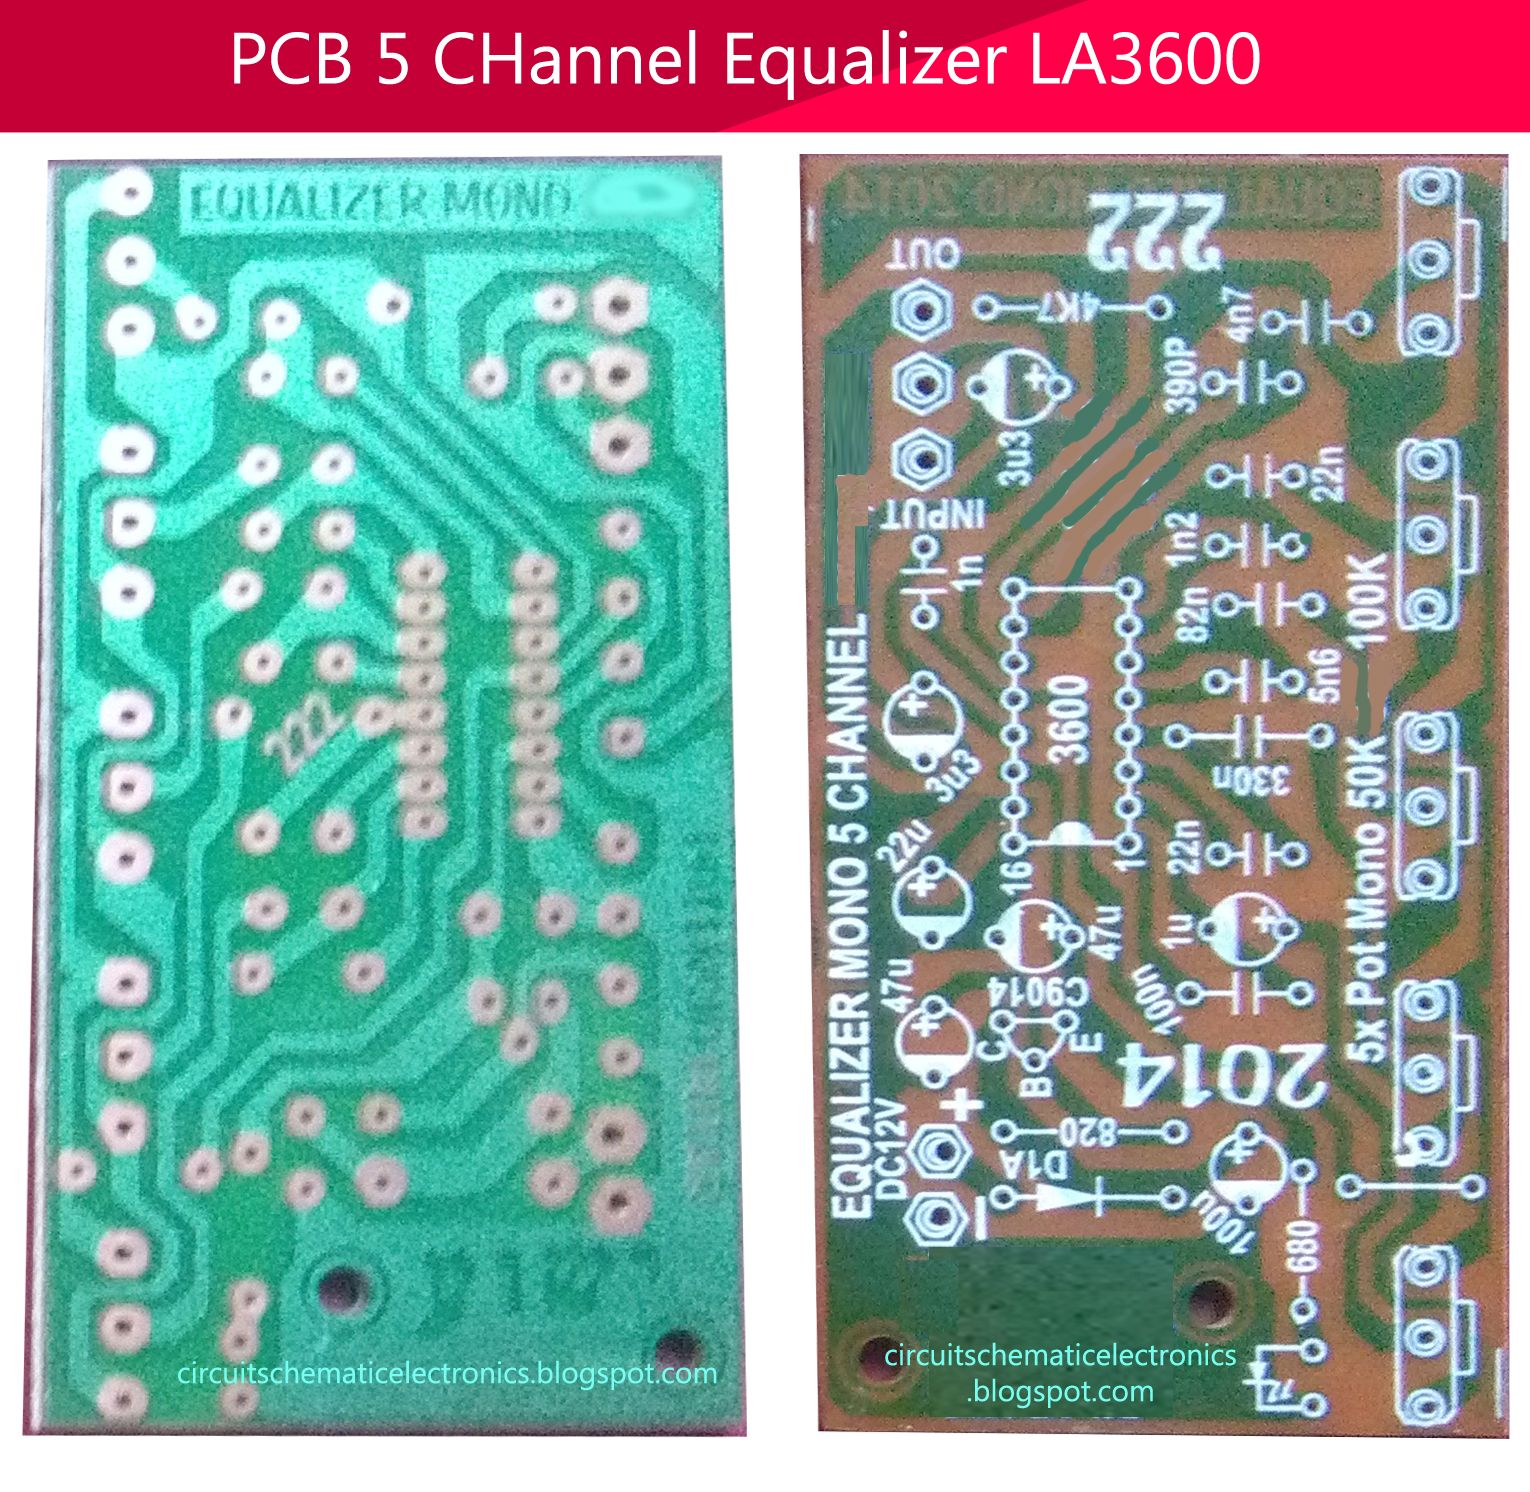 5 Channel Equalizer Using Ic La3600 Uklady Pinterest Design Single Polarity Supply By Lm741 Pcb